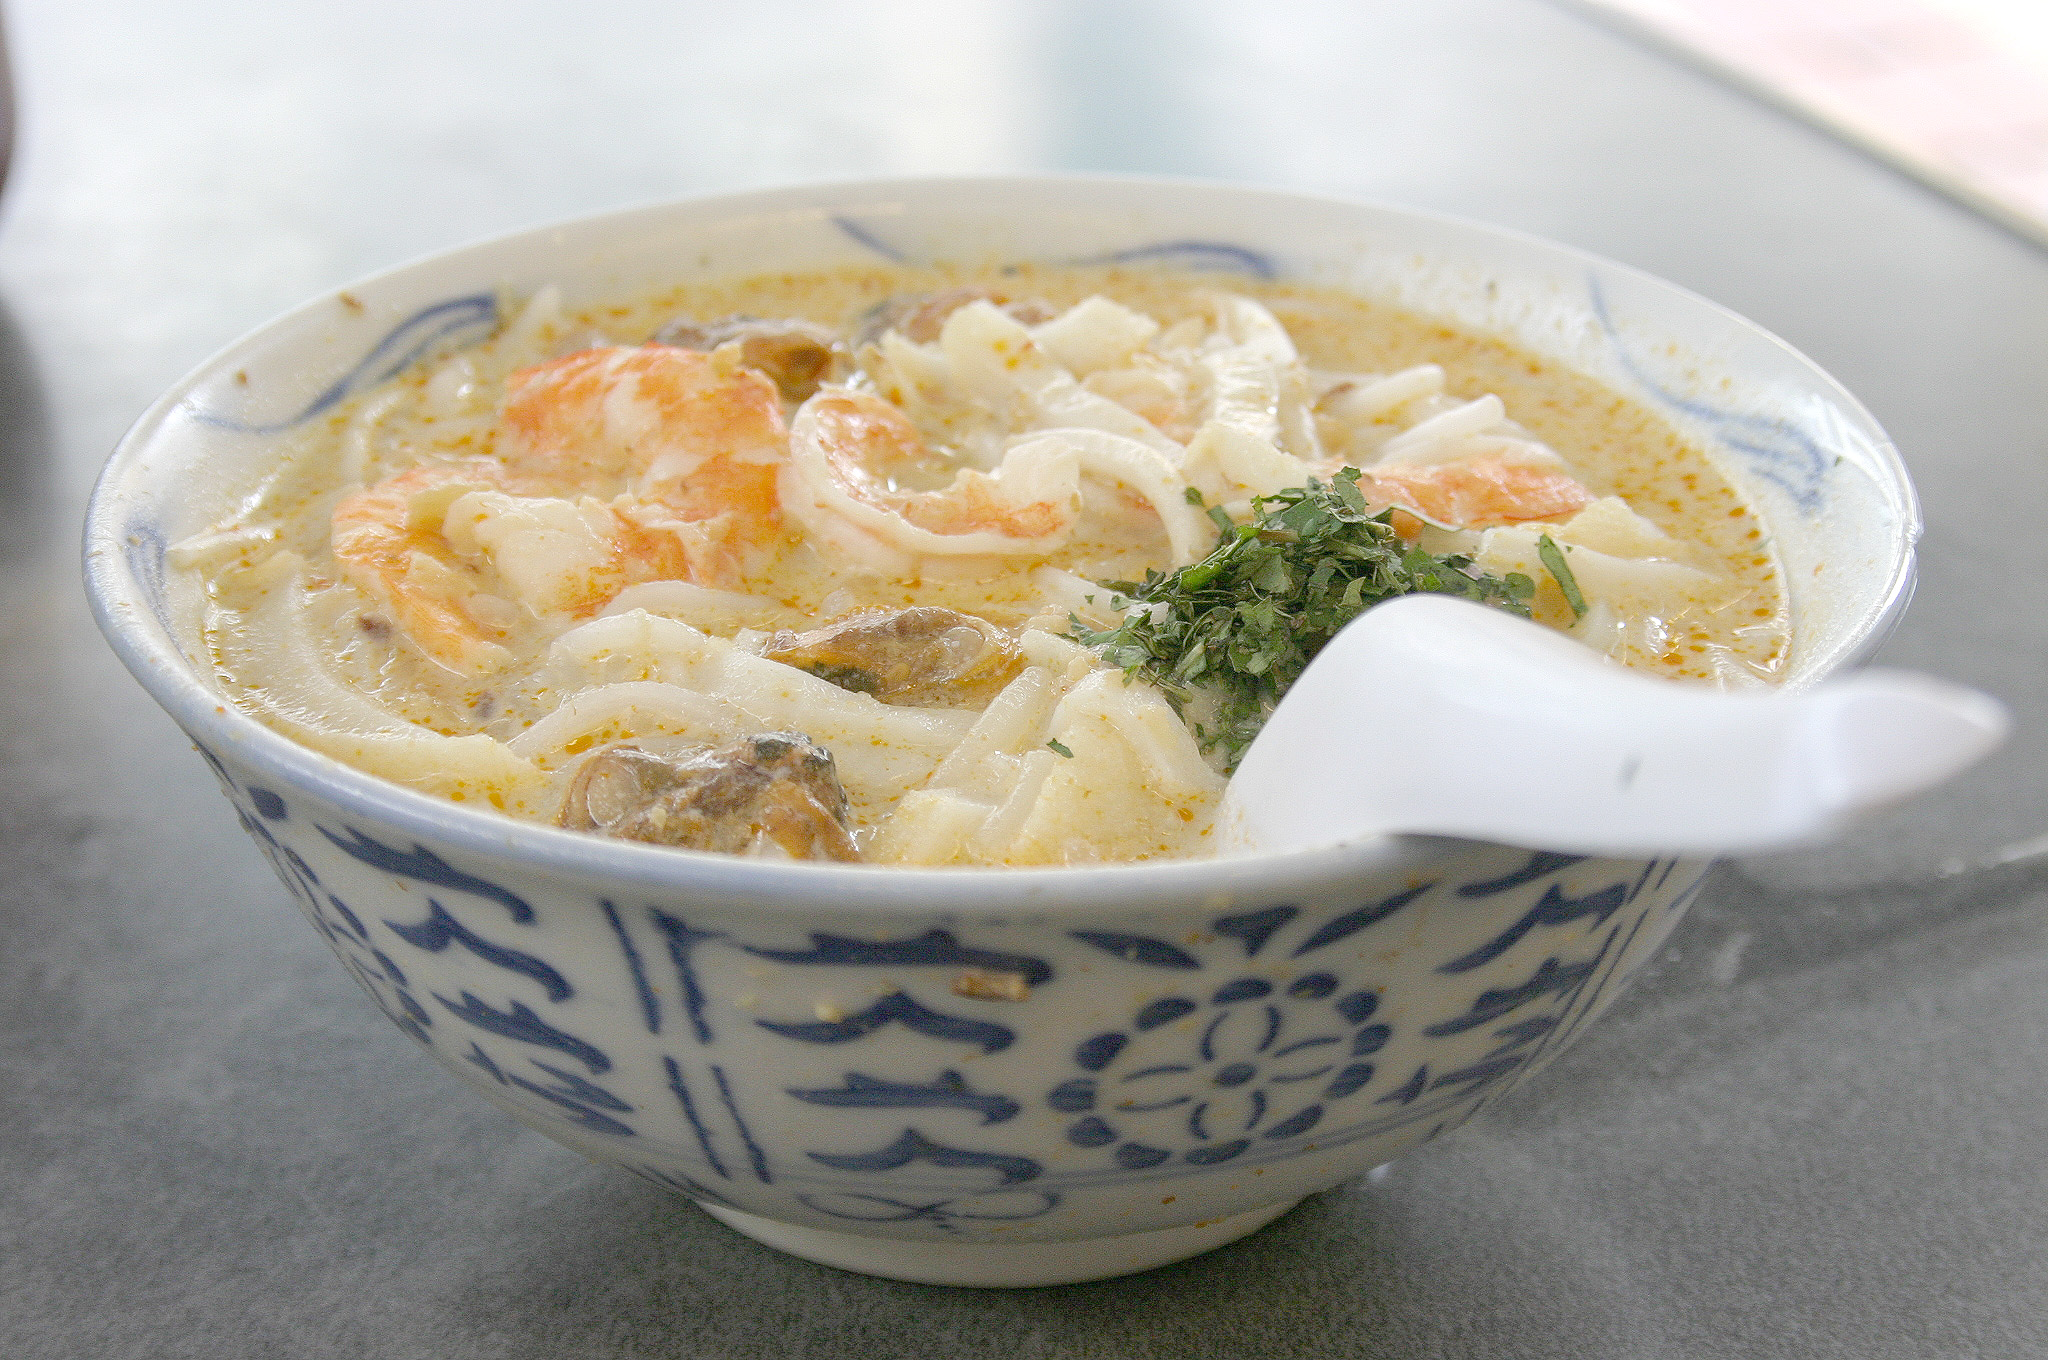 File:Katong Laksa.jpg - Wikipedia, the free encyclopedia